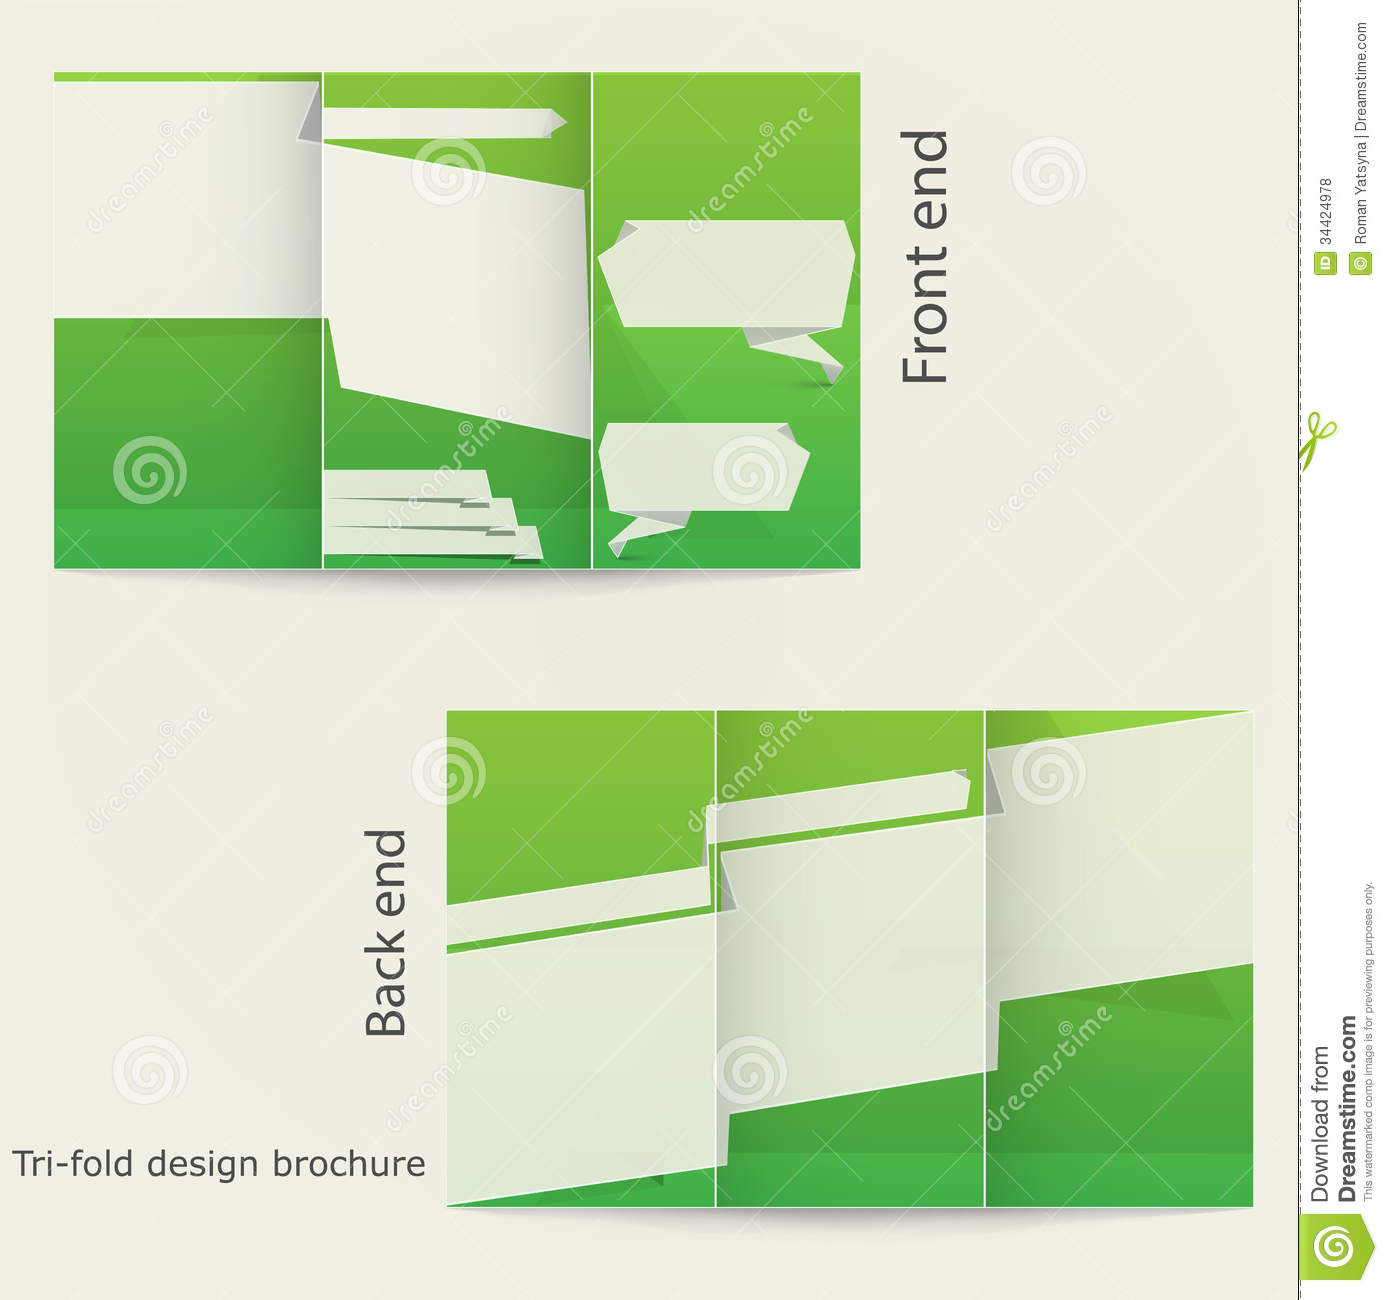 12 tri fold brochure template design images tri fold for Free online tri fold brochure template